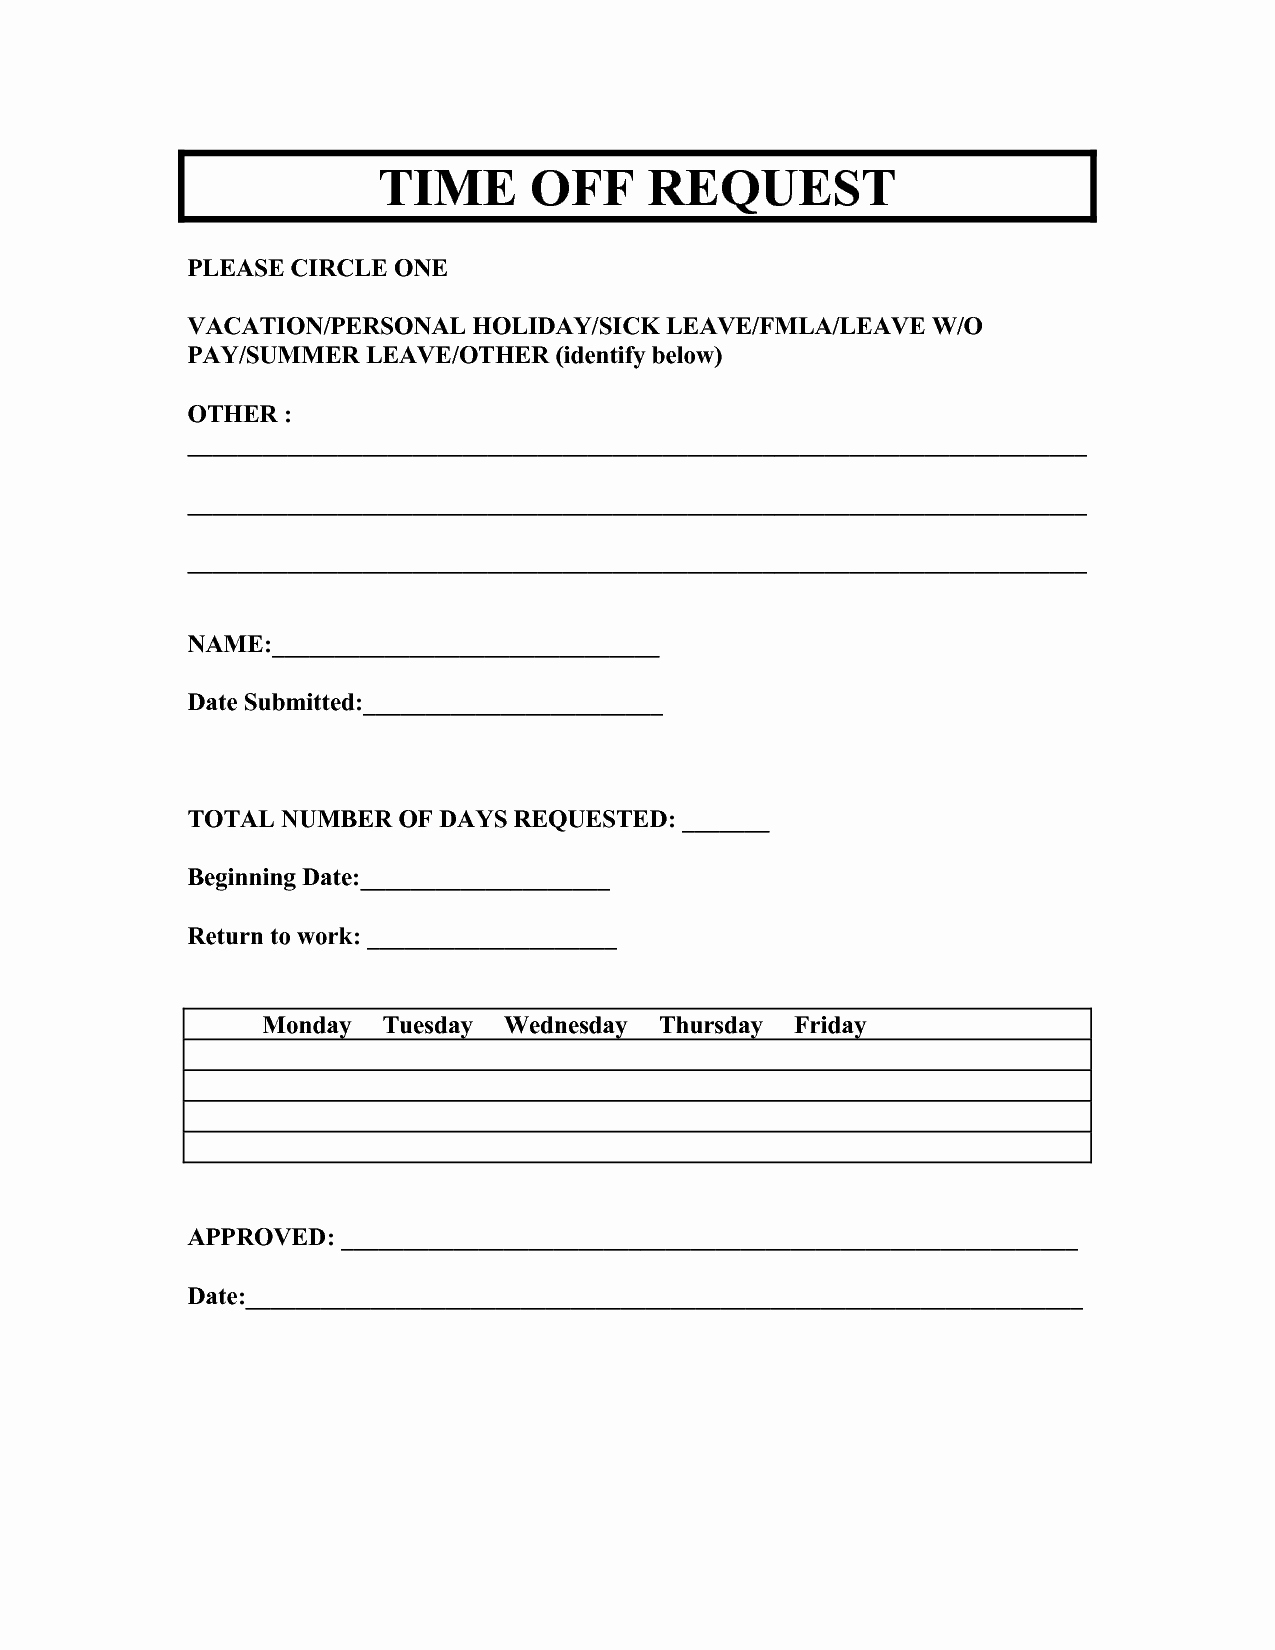 Work Request form Template Unique Vacation Time F Request Template